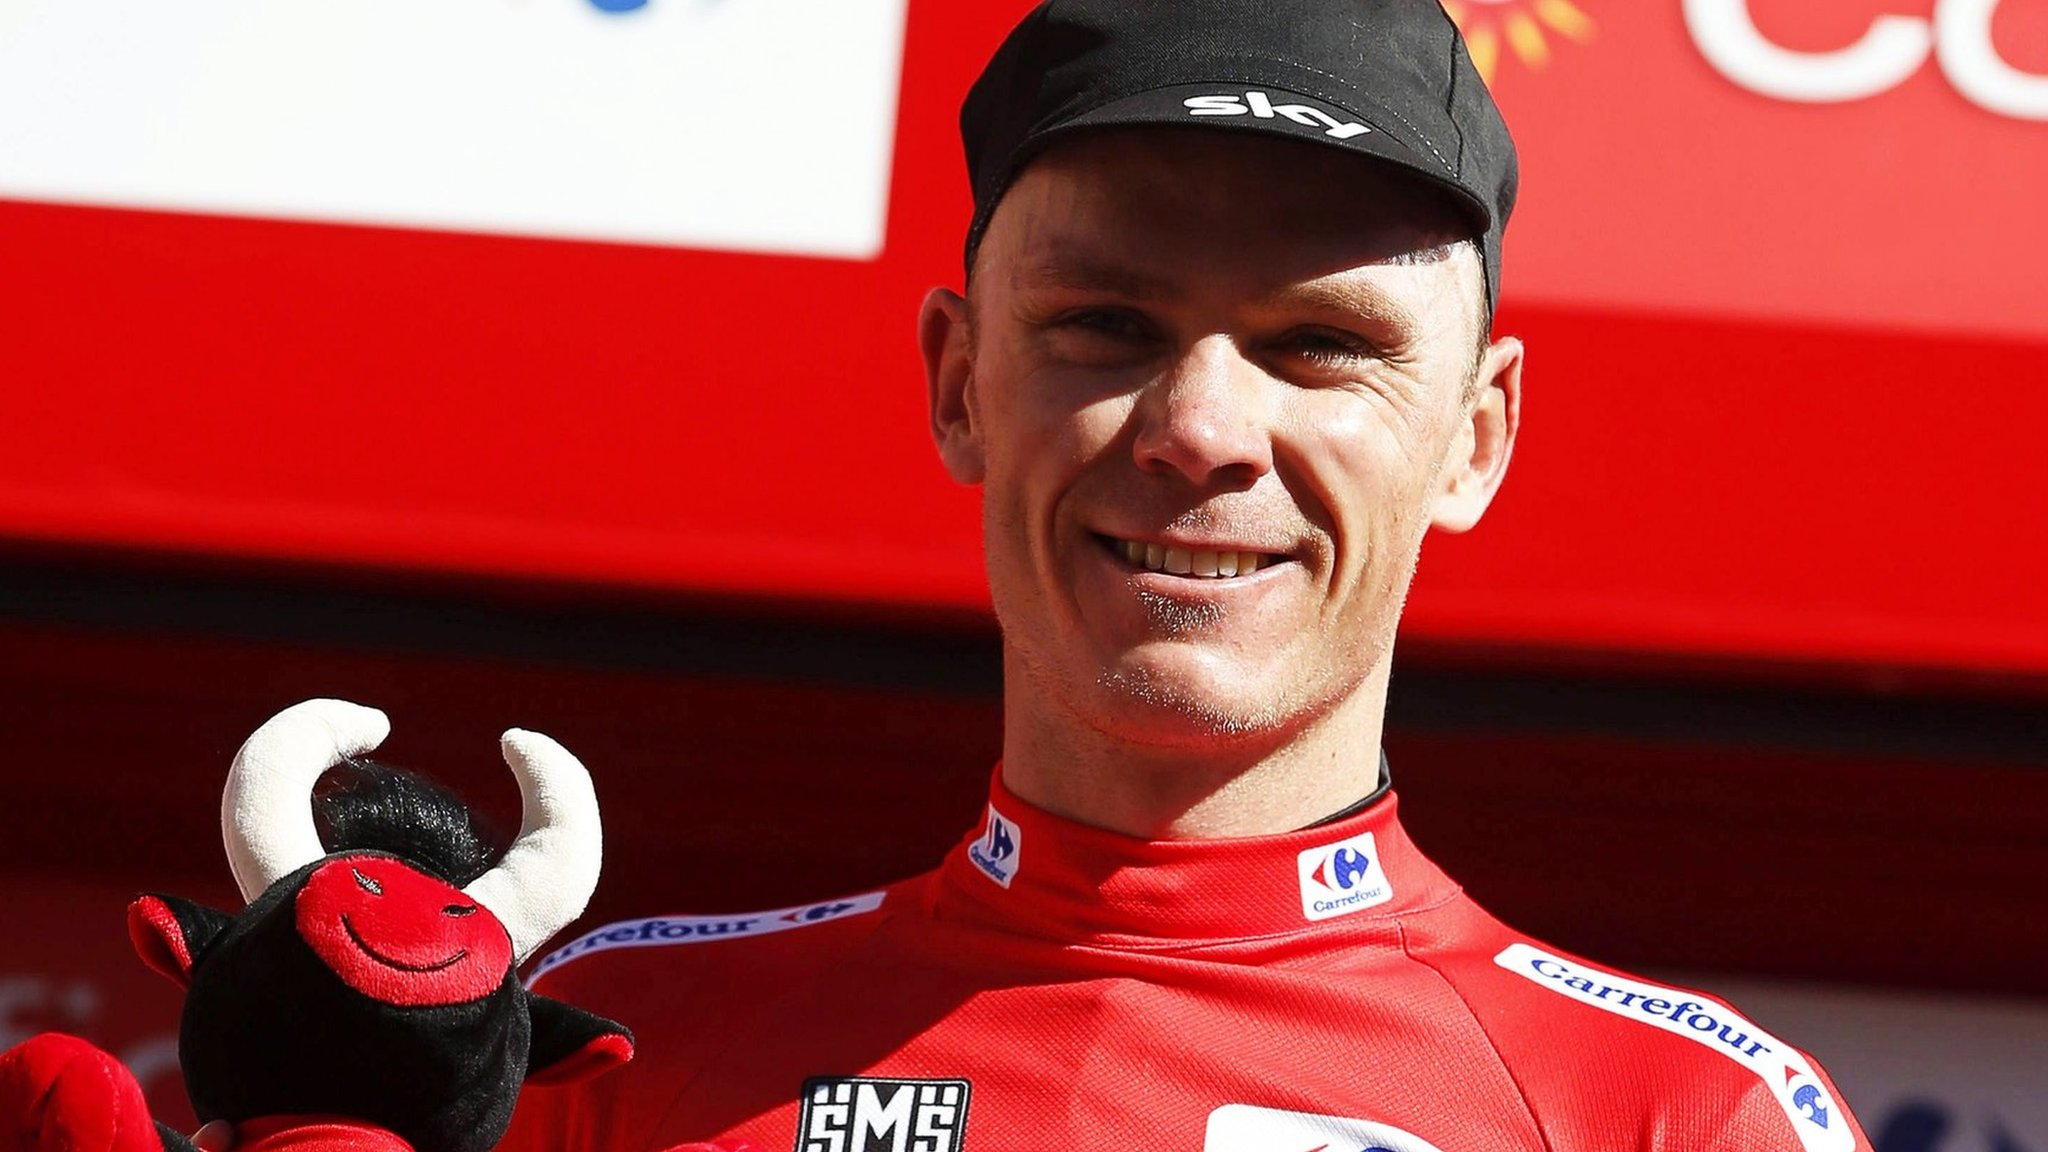 Vuelta a Espana: Chris Froome takes red jersey as Vincenzo Nibali wins third stage